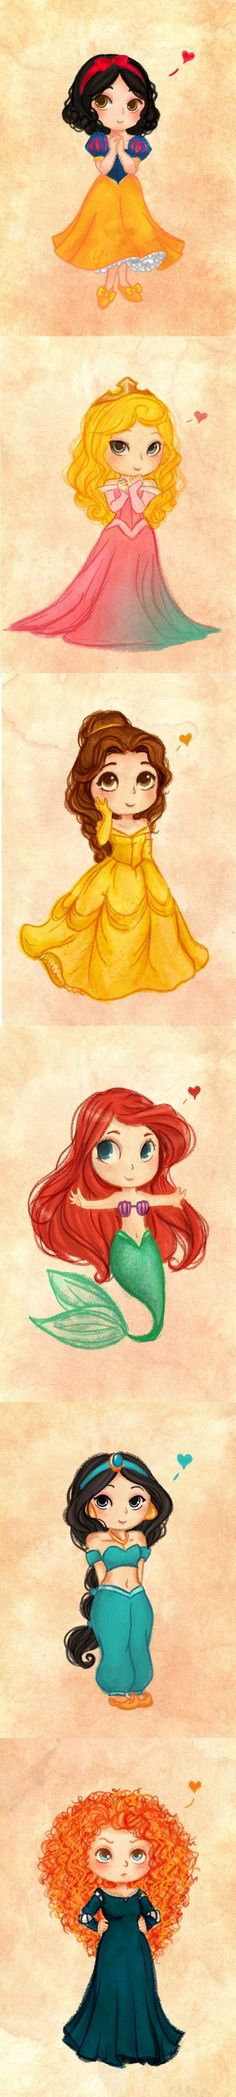 Easy cartoon drawings of Disney characters